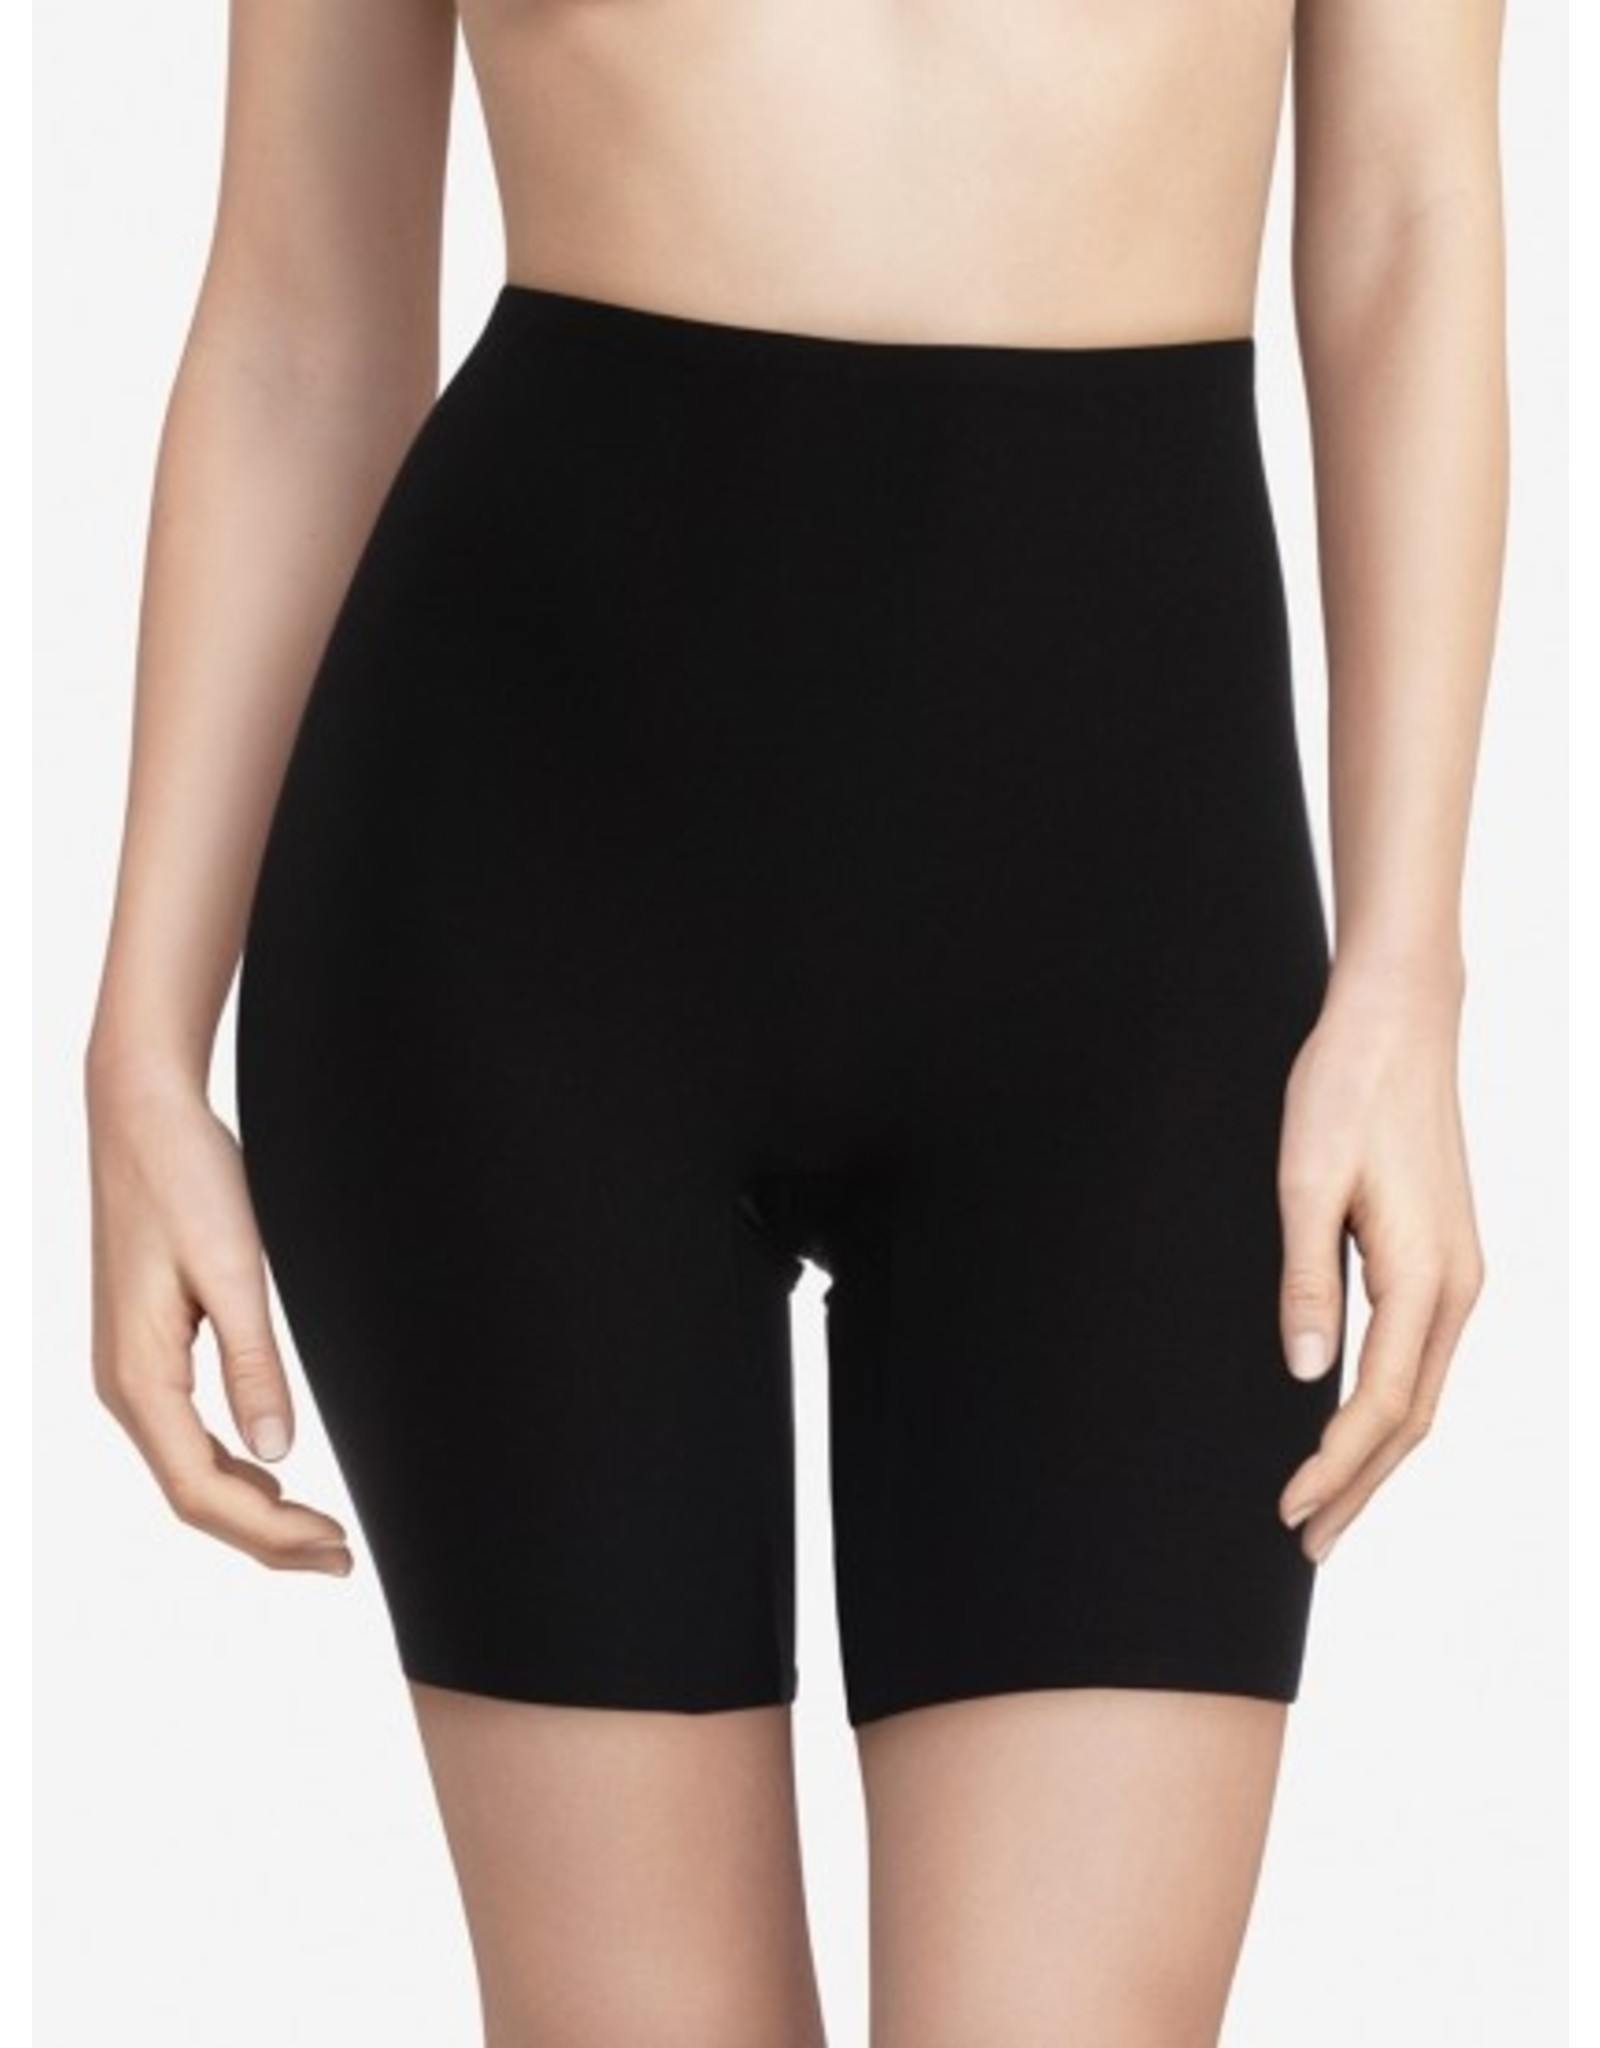 Chantelle Chantelle Soft Stretch Mid Thigh Shorts